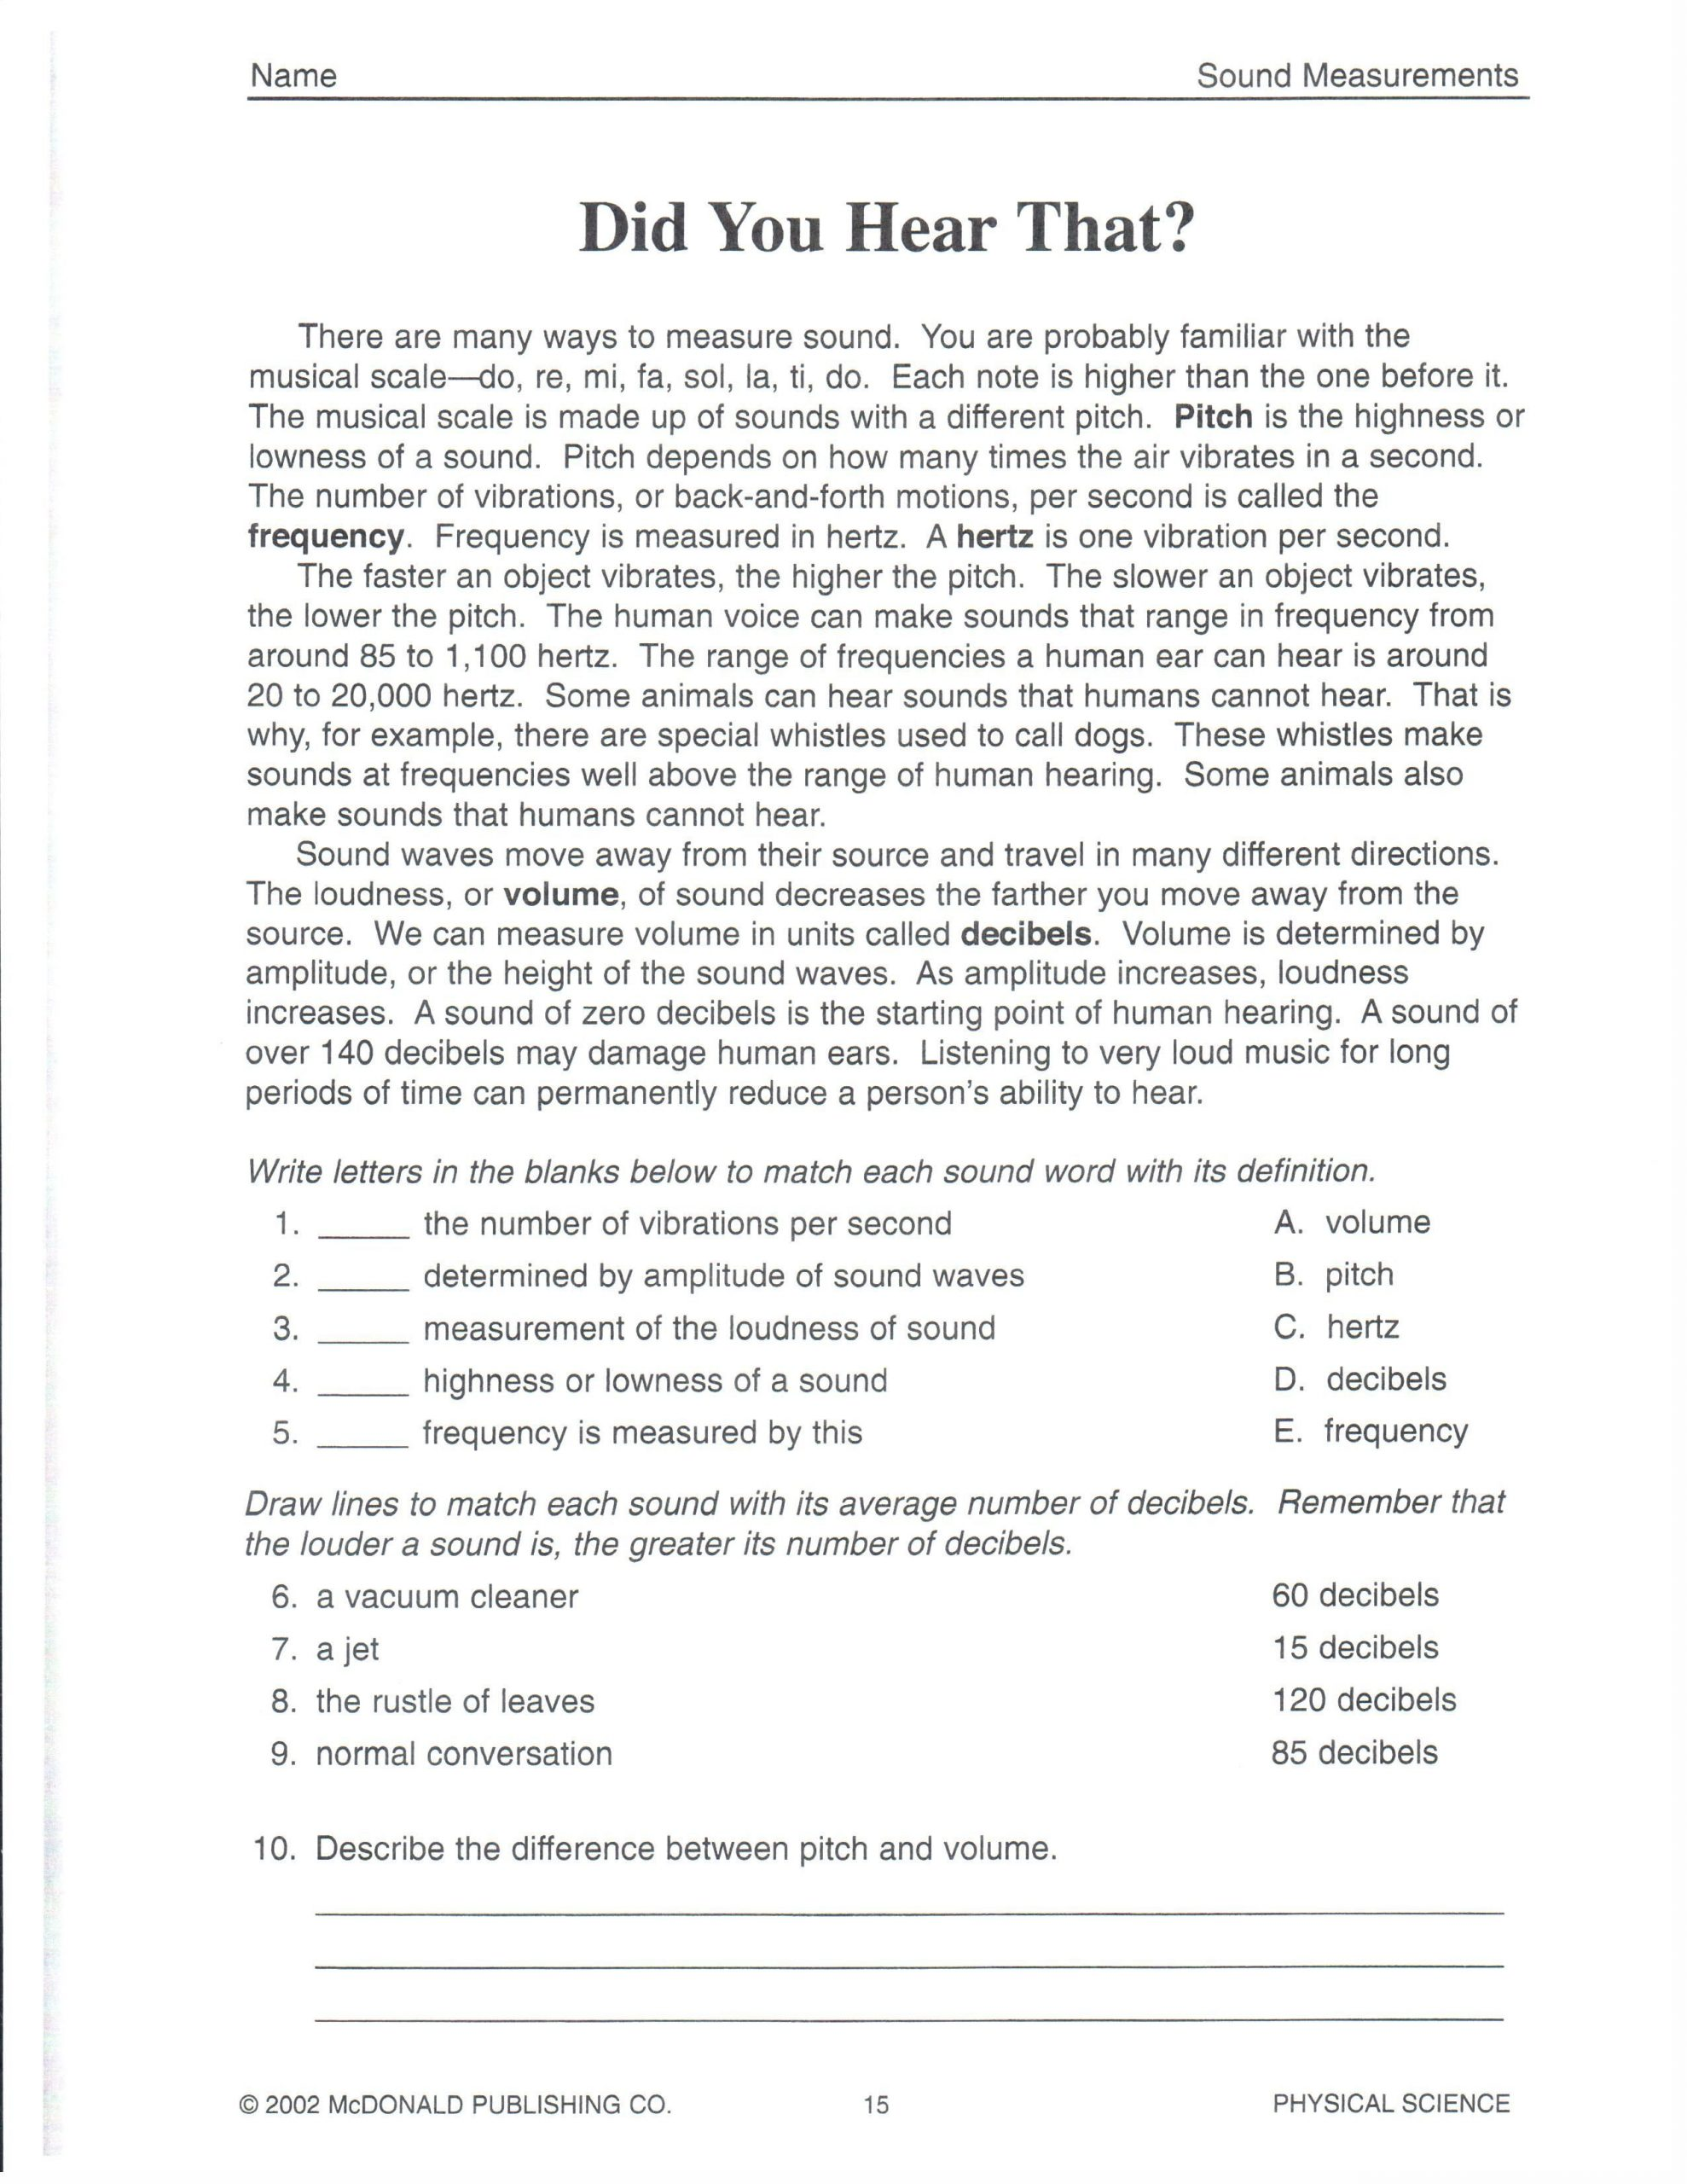 Eighth Grade Science Worksheets Physical Science Did You Hear that 101roxm 2 550—3 300